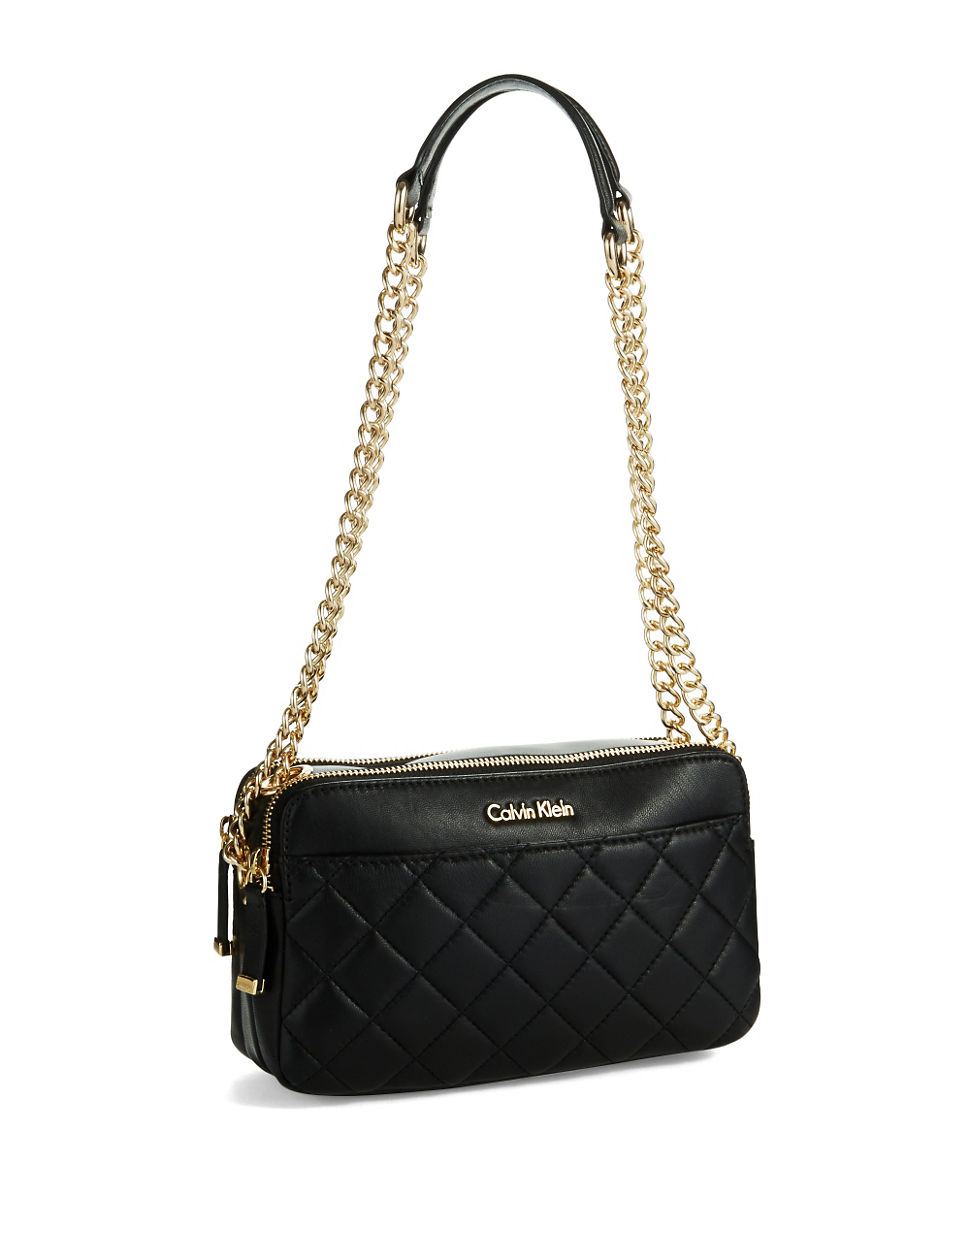 56025c33c4 Gallery. Previously sold at: Lord & Taylor · Women's Calvin Klein Crossbody